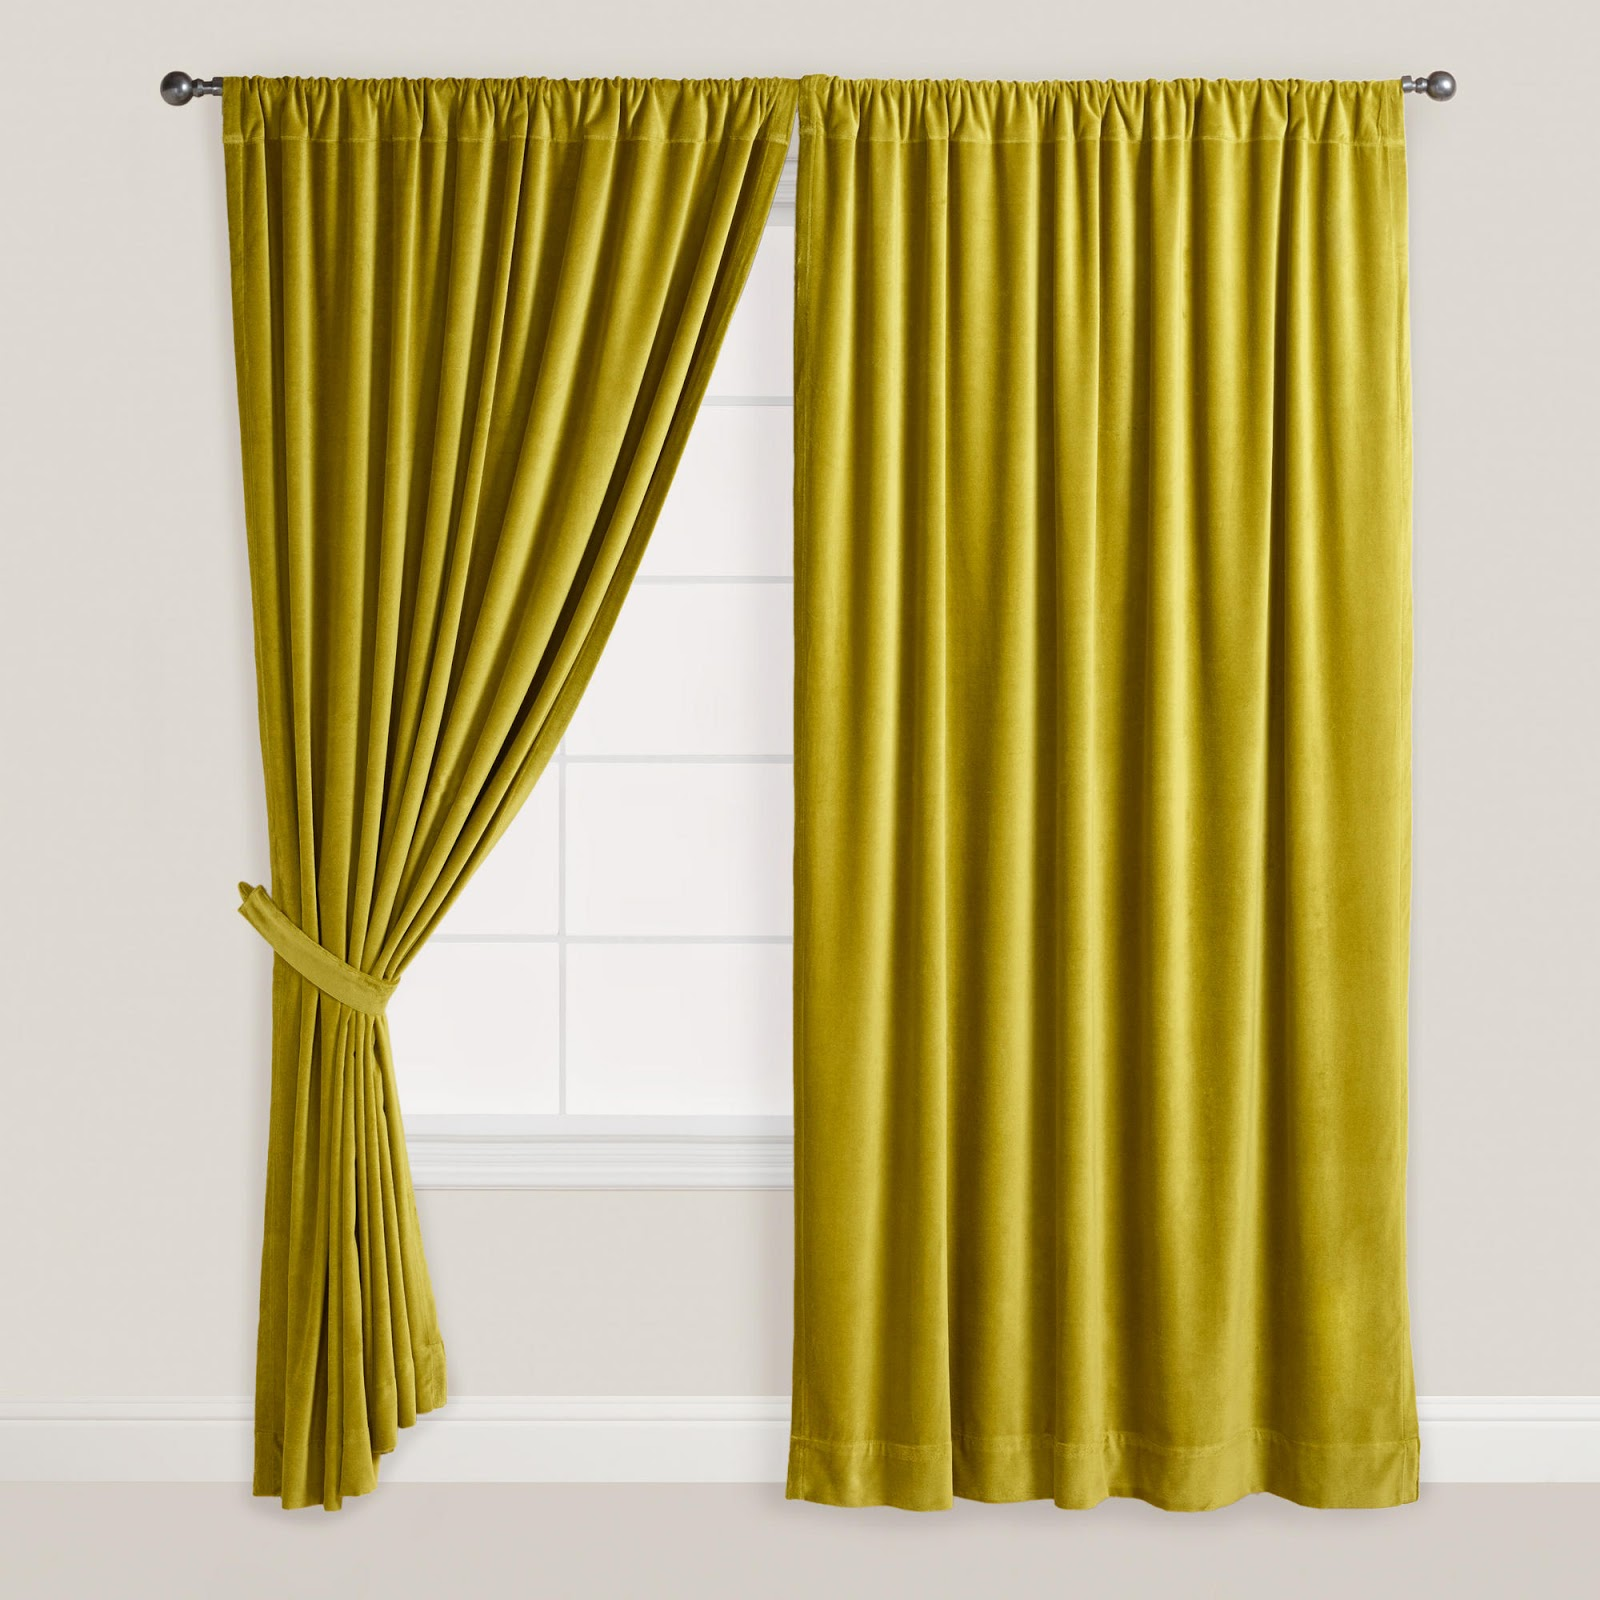 Curtains Accessories Online Agatha Christie Aluminium Windows And Bed Sets Bedding To Match